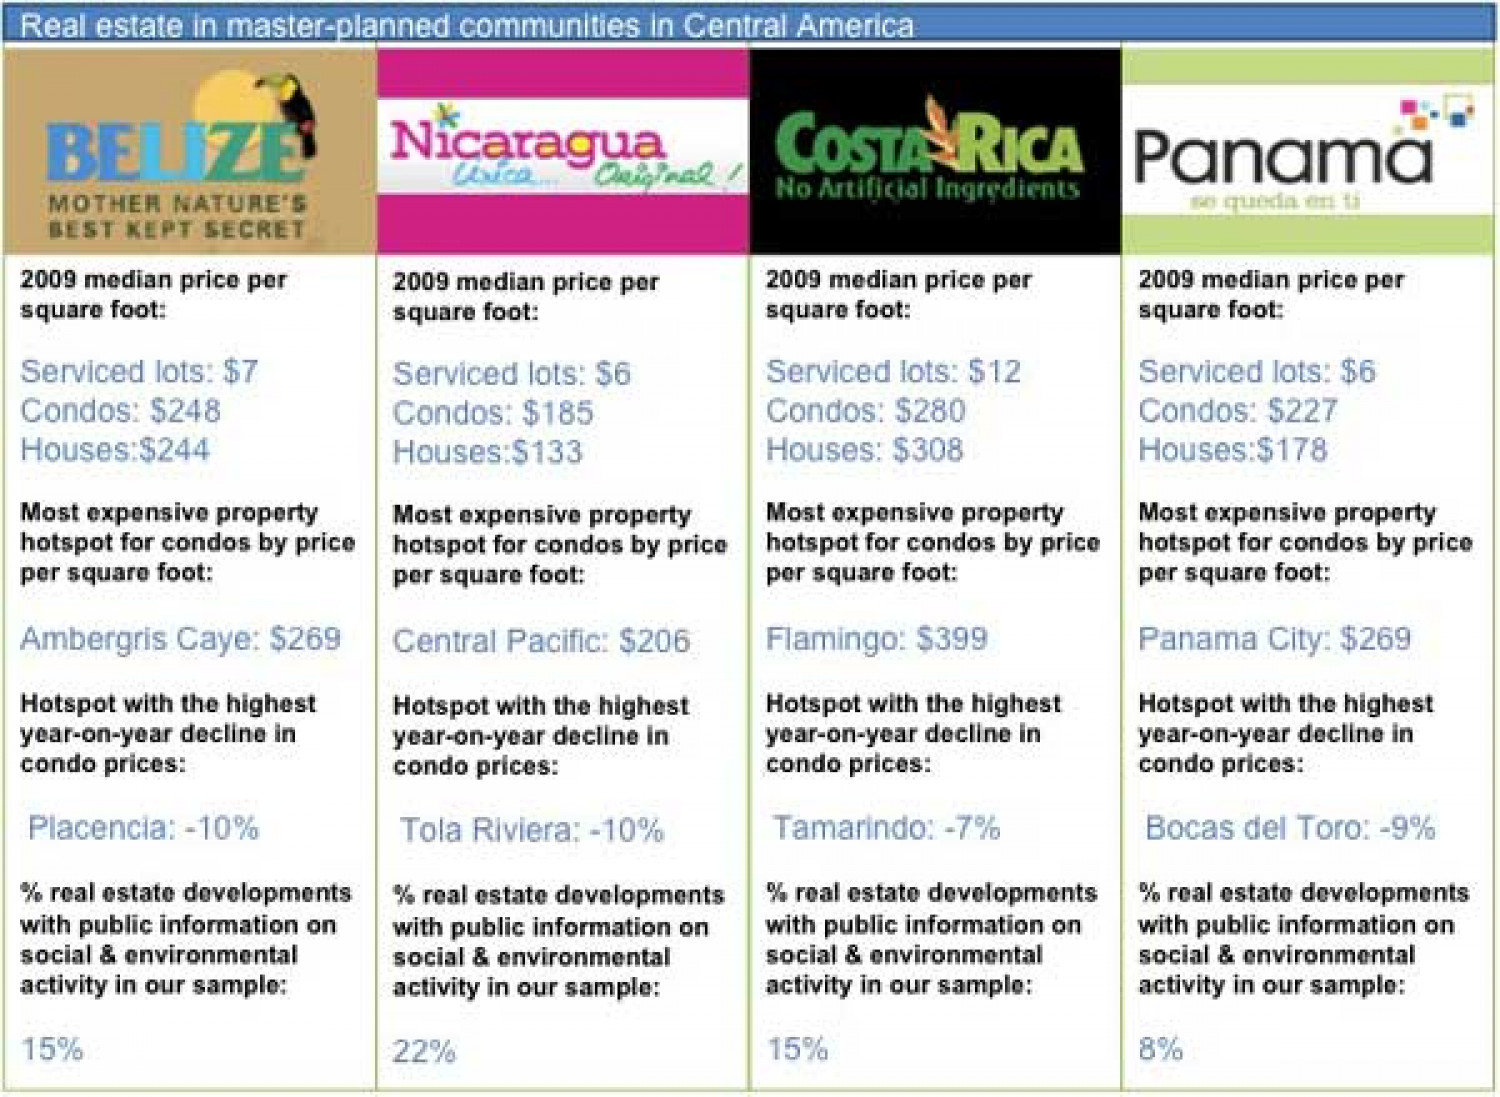 Infographic Revealing Data on International Real Estate in Central America Infographic